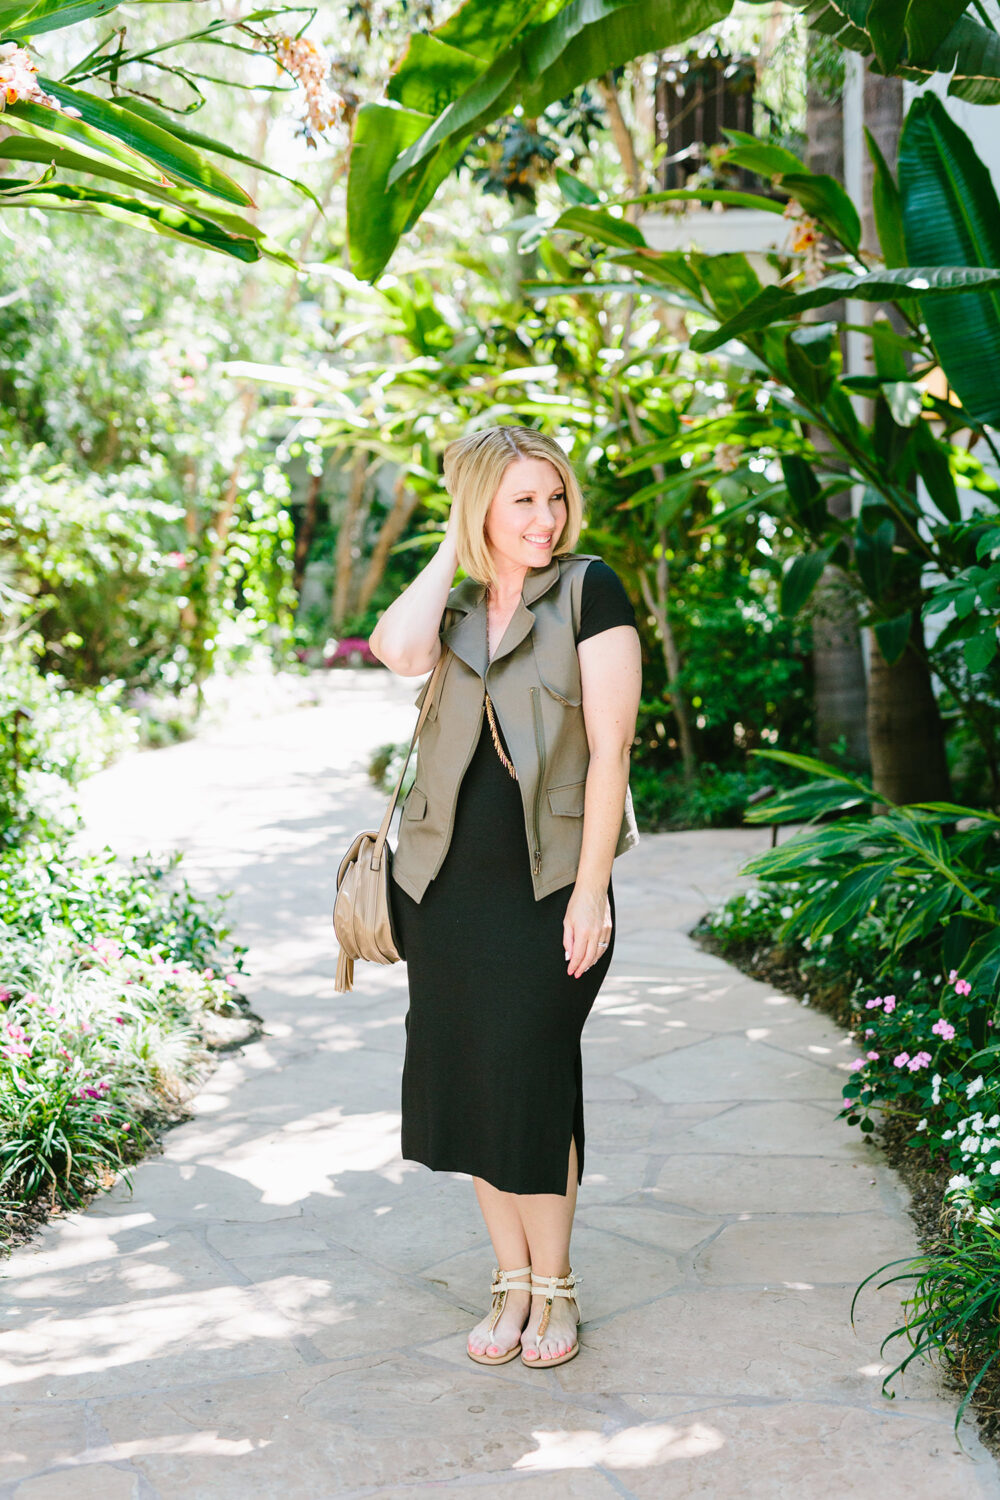 Stitch Fix Review July: Three simple tips from the Stitch Fix Styling Team that tell how to get great staples like this Amour Vert Ahren Knit Dress!